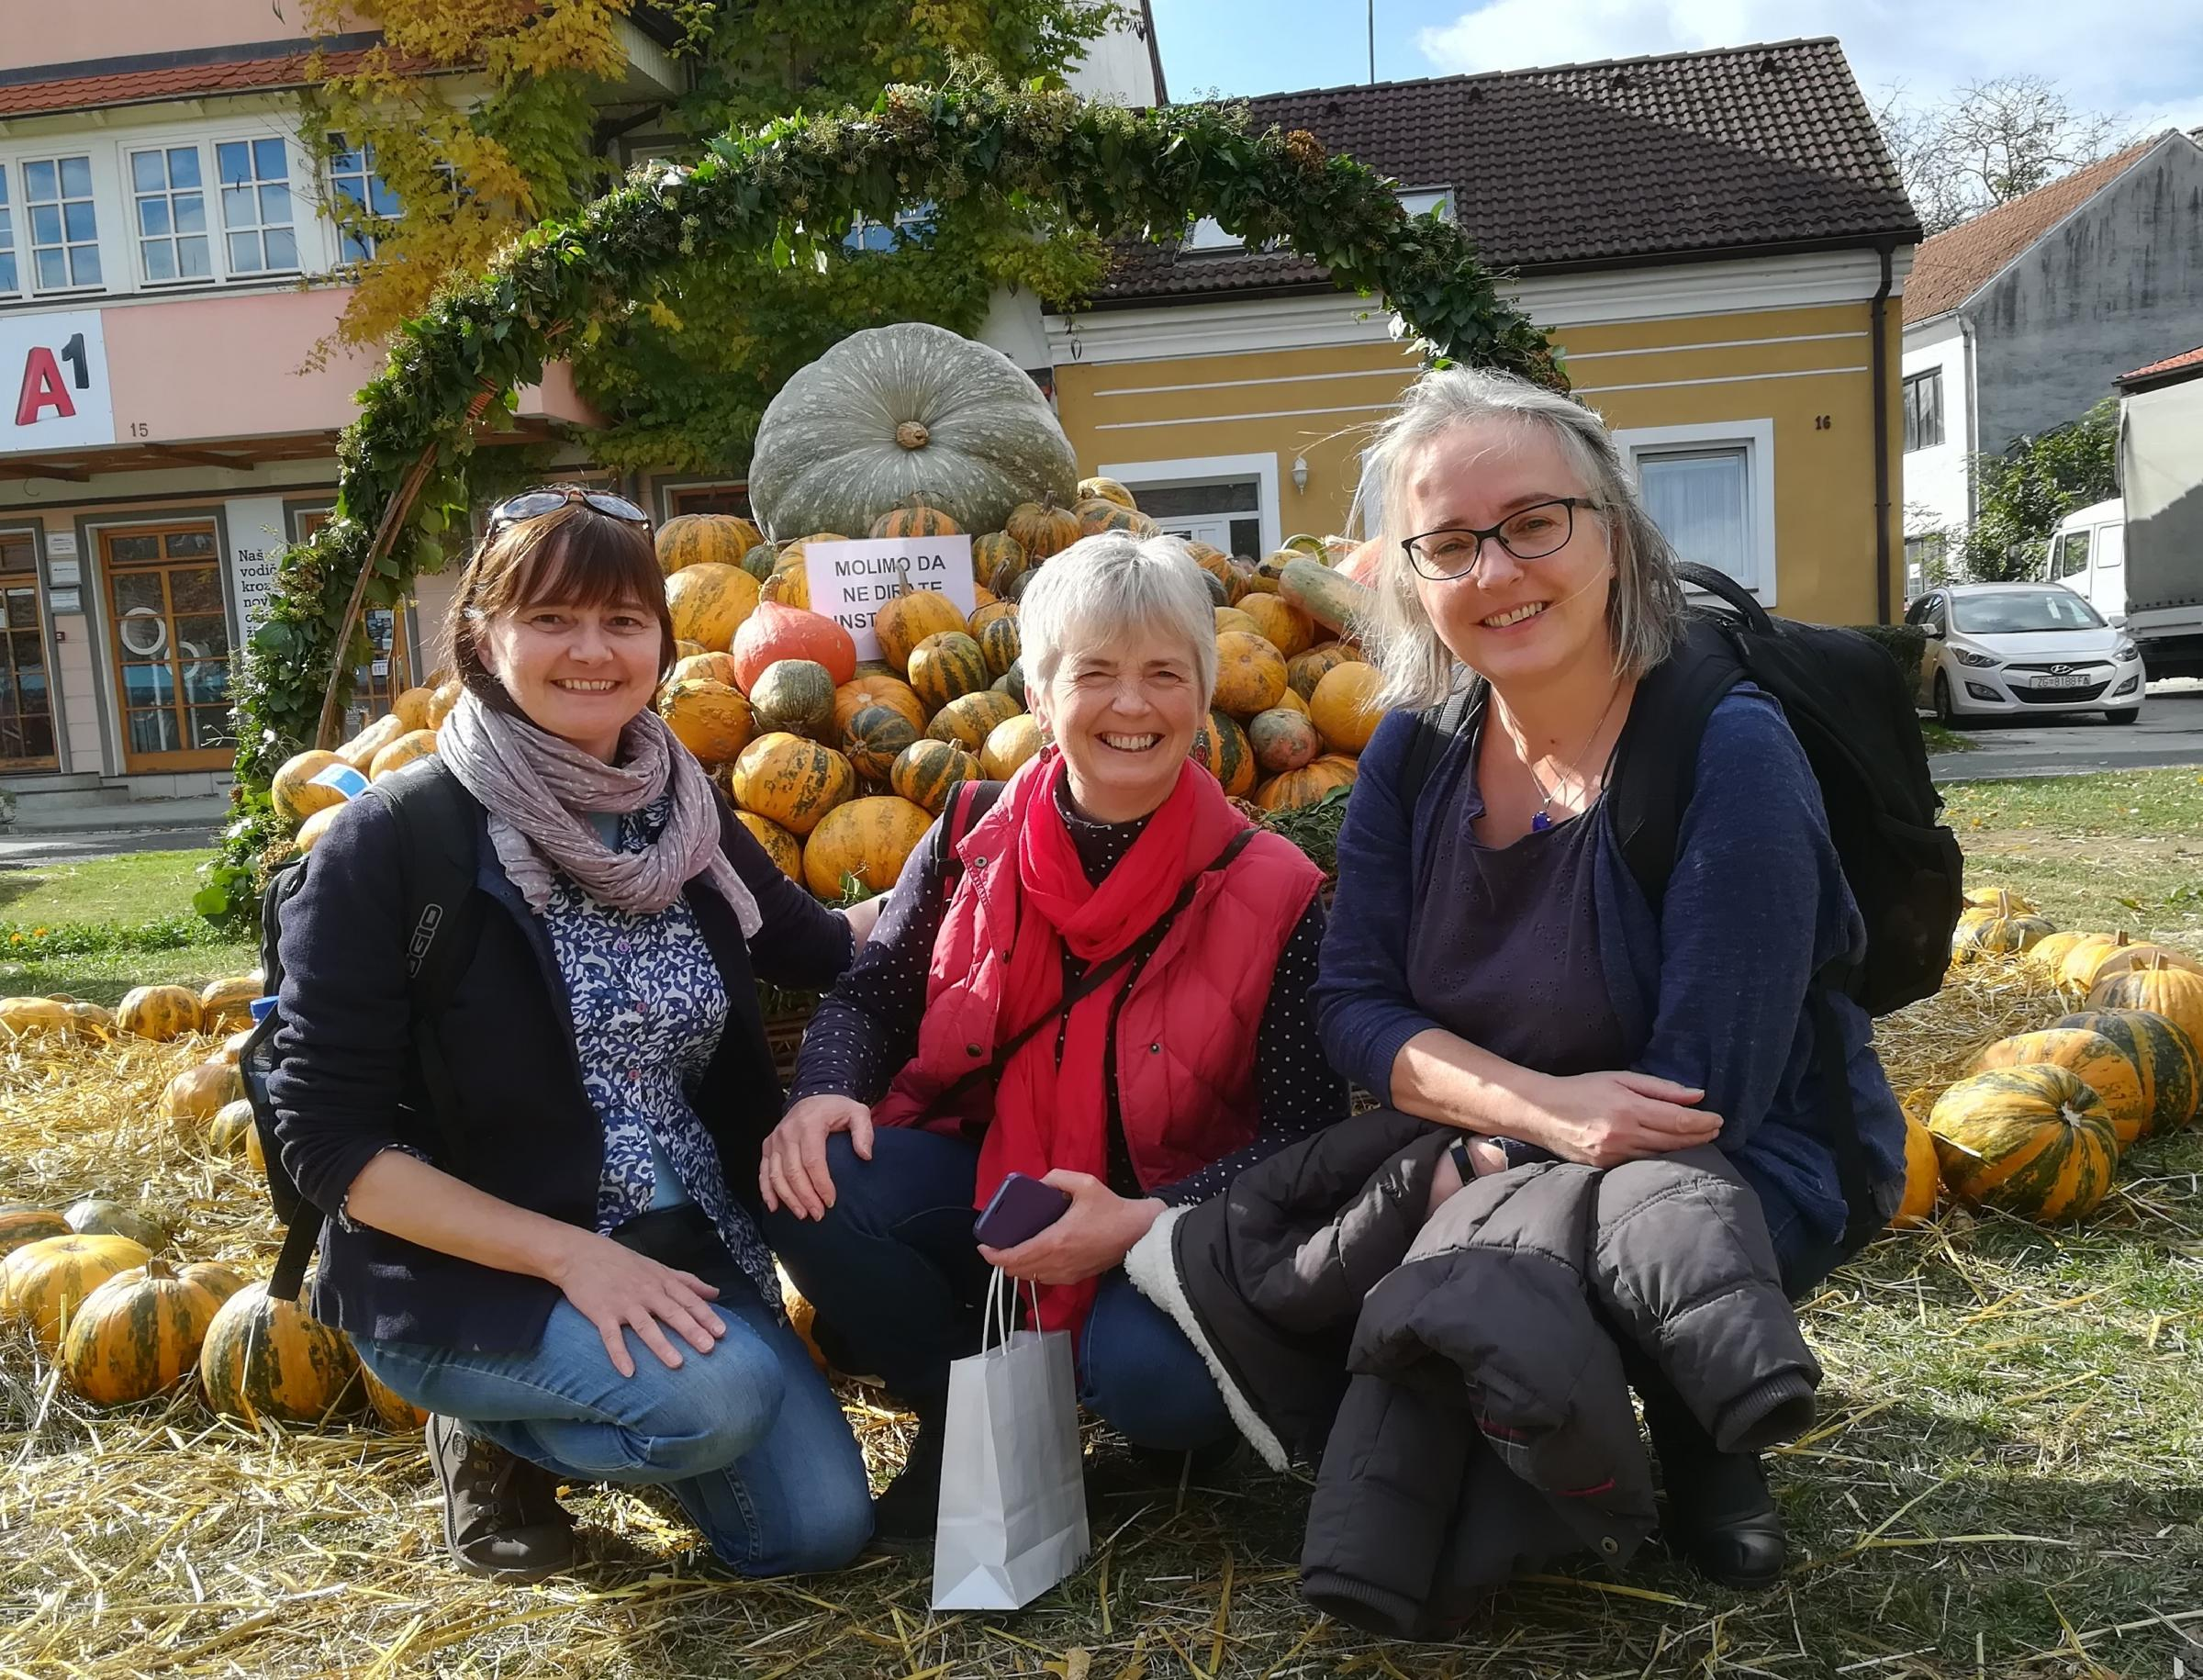 From left, Diana Linford, Jenny Hughes and Ruth McMeekin in Croatia